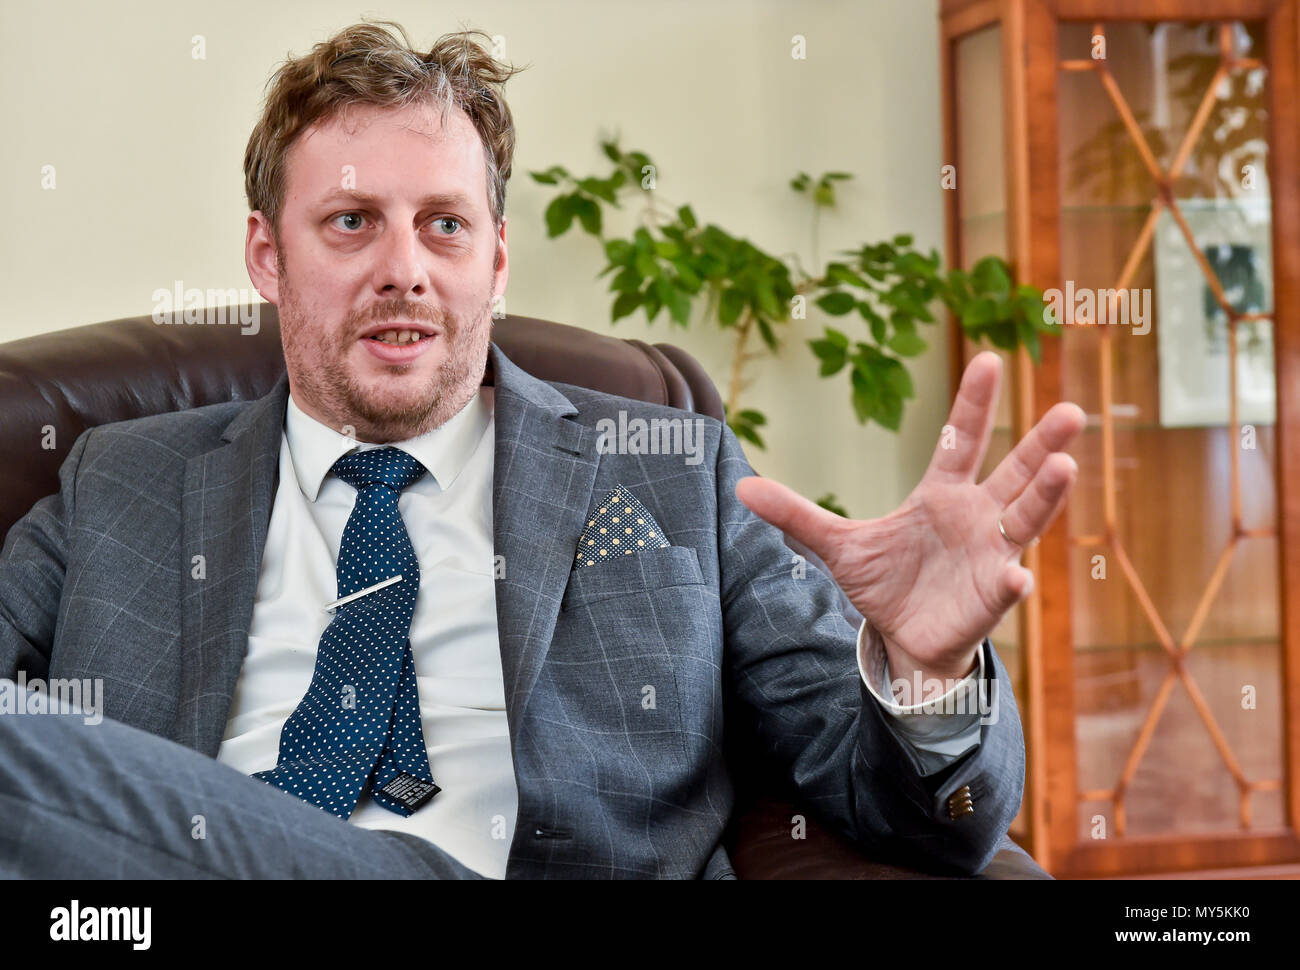 """Prague, Czech Republic. 04th June, 2018. Ondrej Ditrych, new Director of the Czech """"Institute of International Relations"""", speaks during the interview for the Czech News Agency in Prague, Czech Republic, on June 4, 2018. Credit: Vit Simanek/CTK Photo/Alamy Live News Stock Photo"""